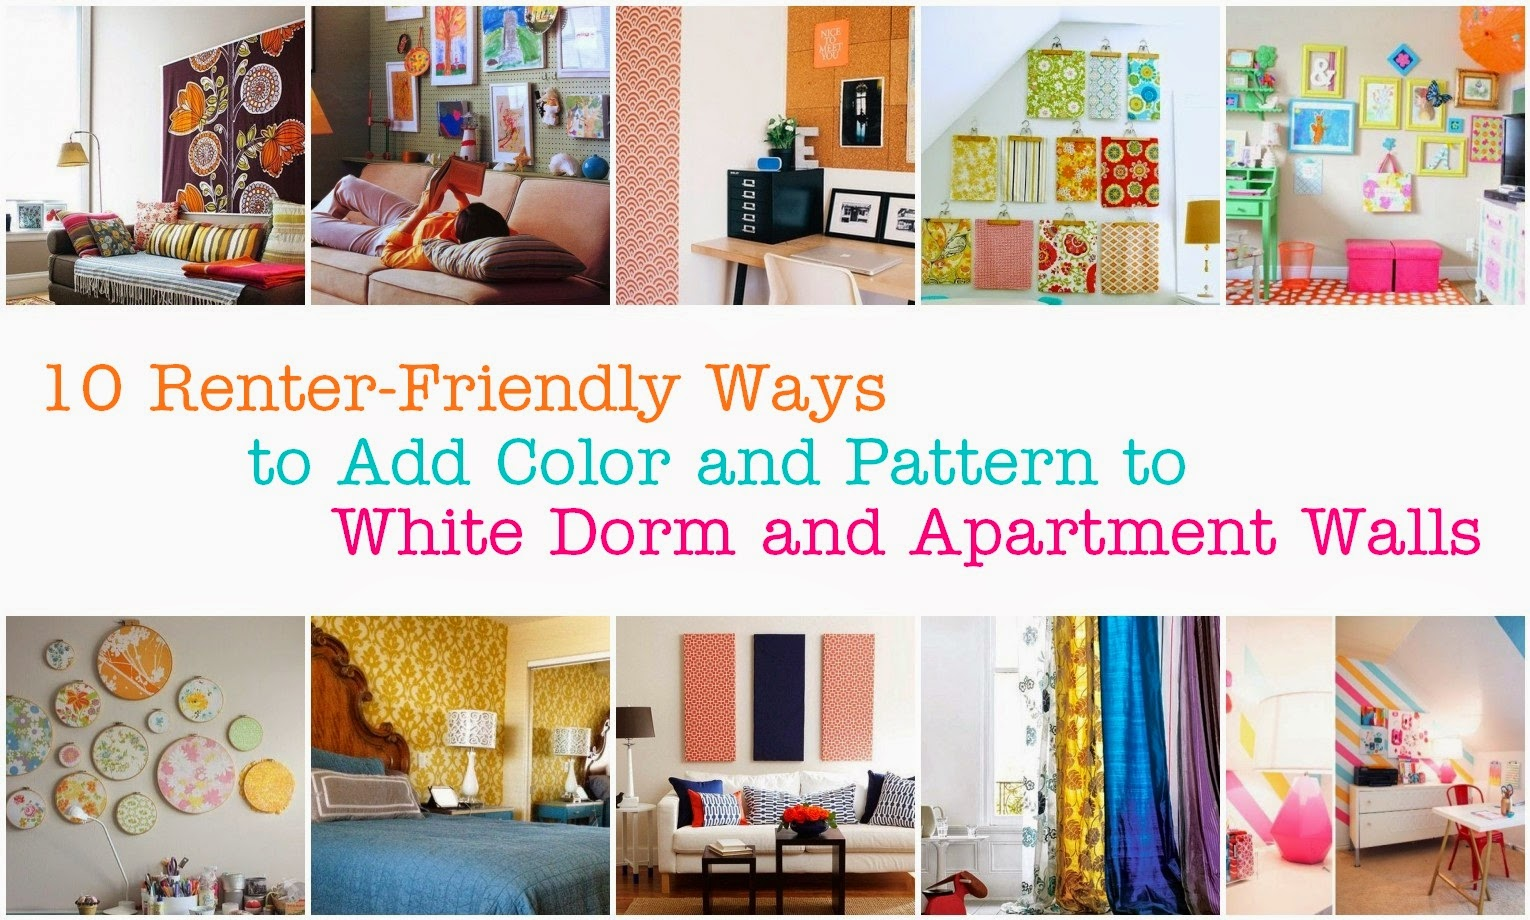 Apartment Decorating Without Painting the lovely side: 10 renter-friendly ways to add color & pattern to